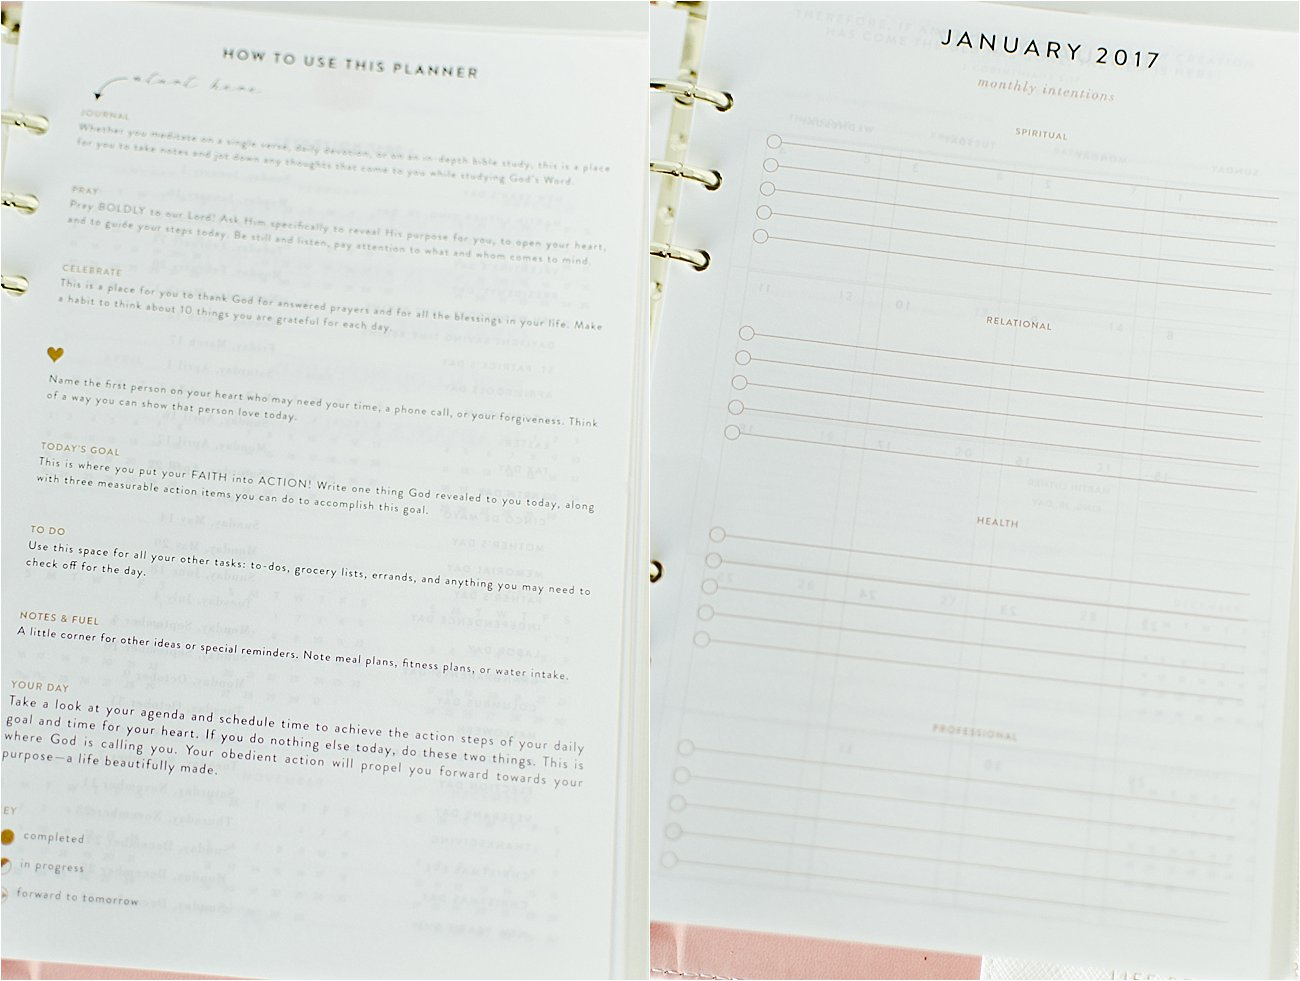 Taking on 2017 with The Intentional Planner   Intentional Planner Review - Christian Planner and Prayer Journal Review (8)